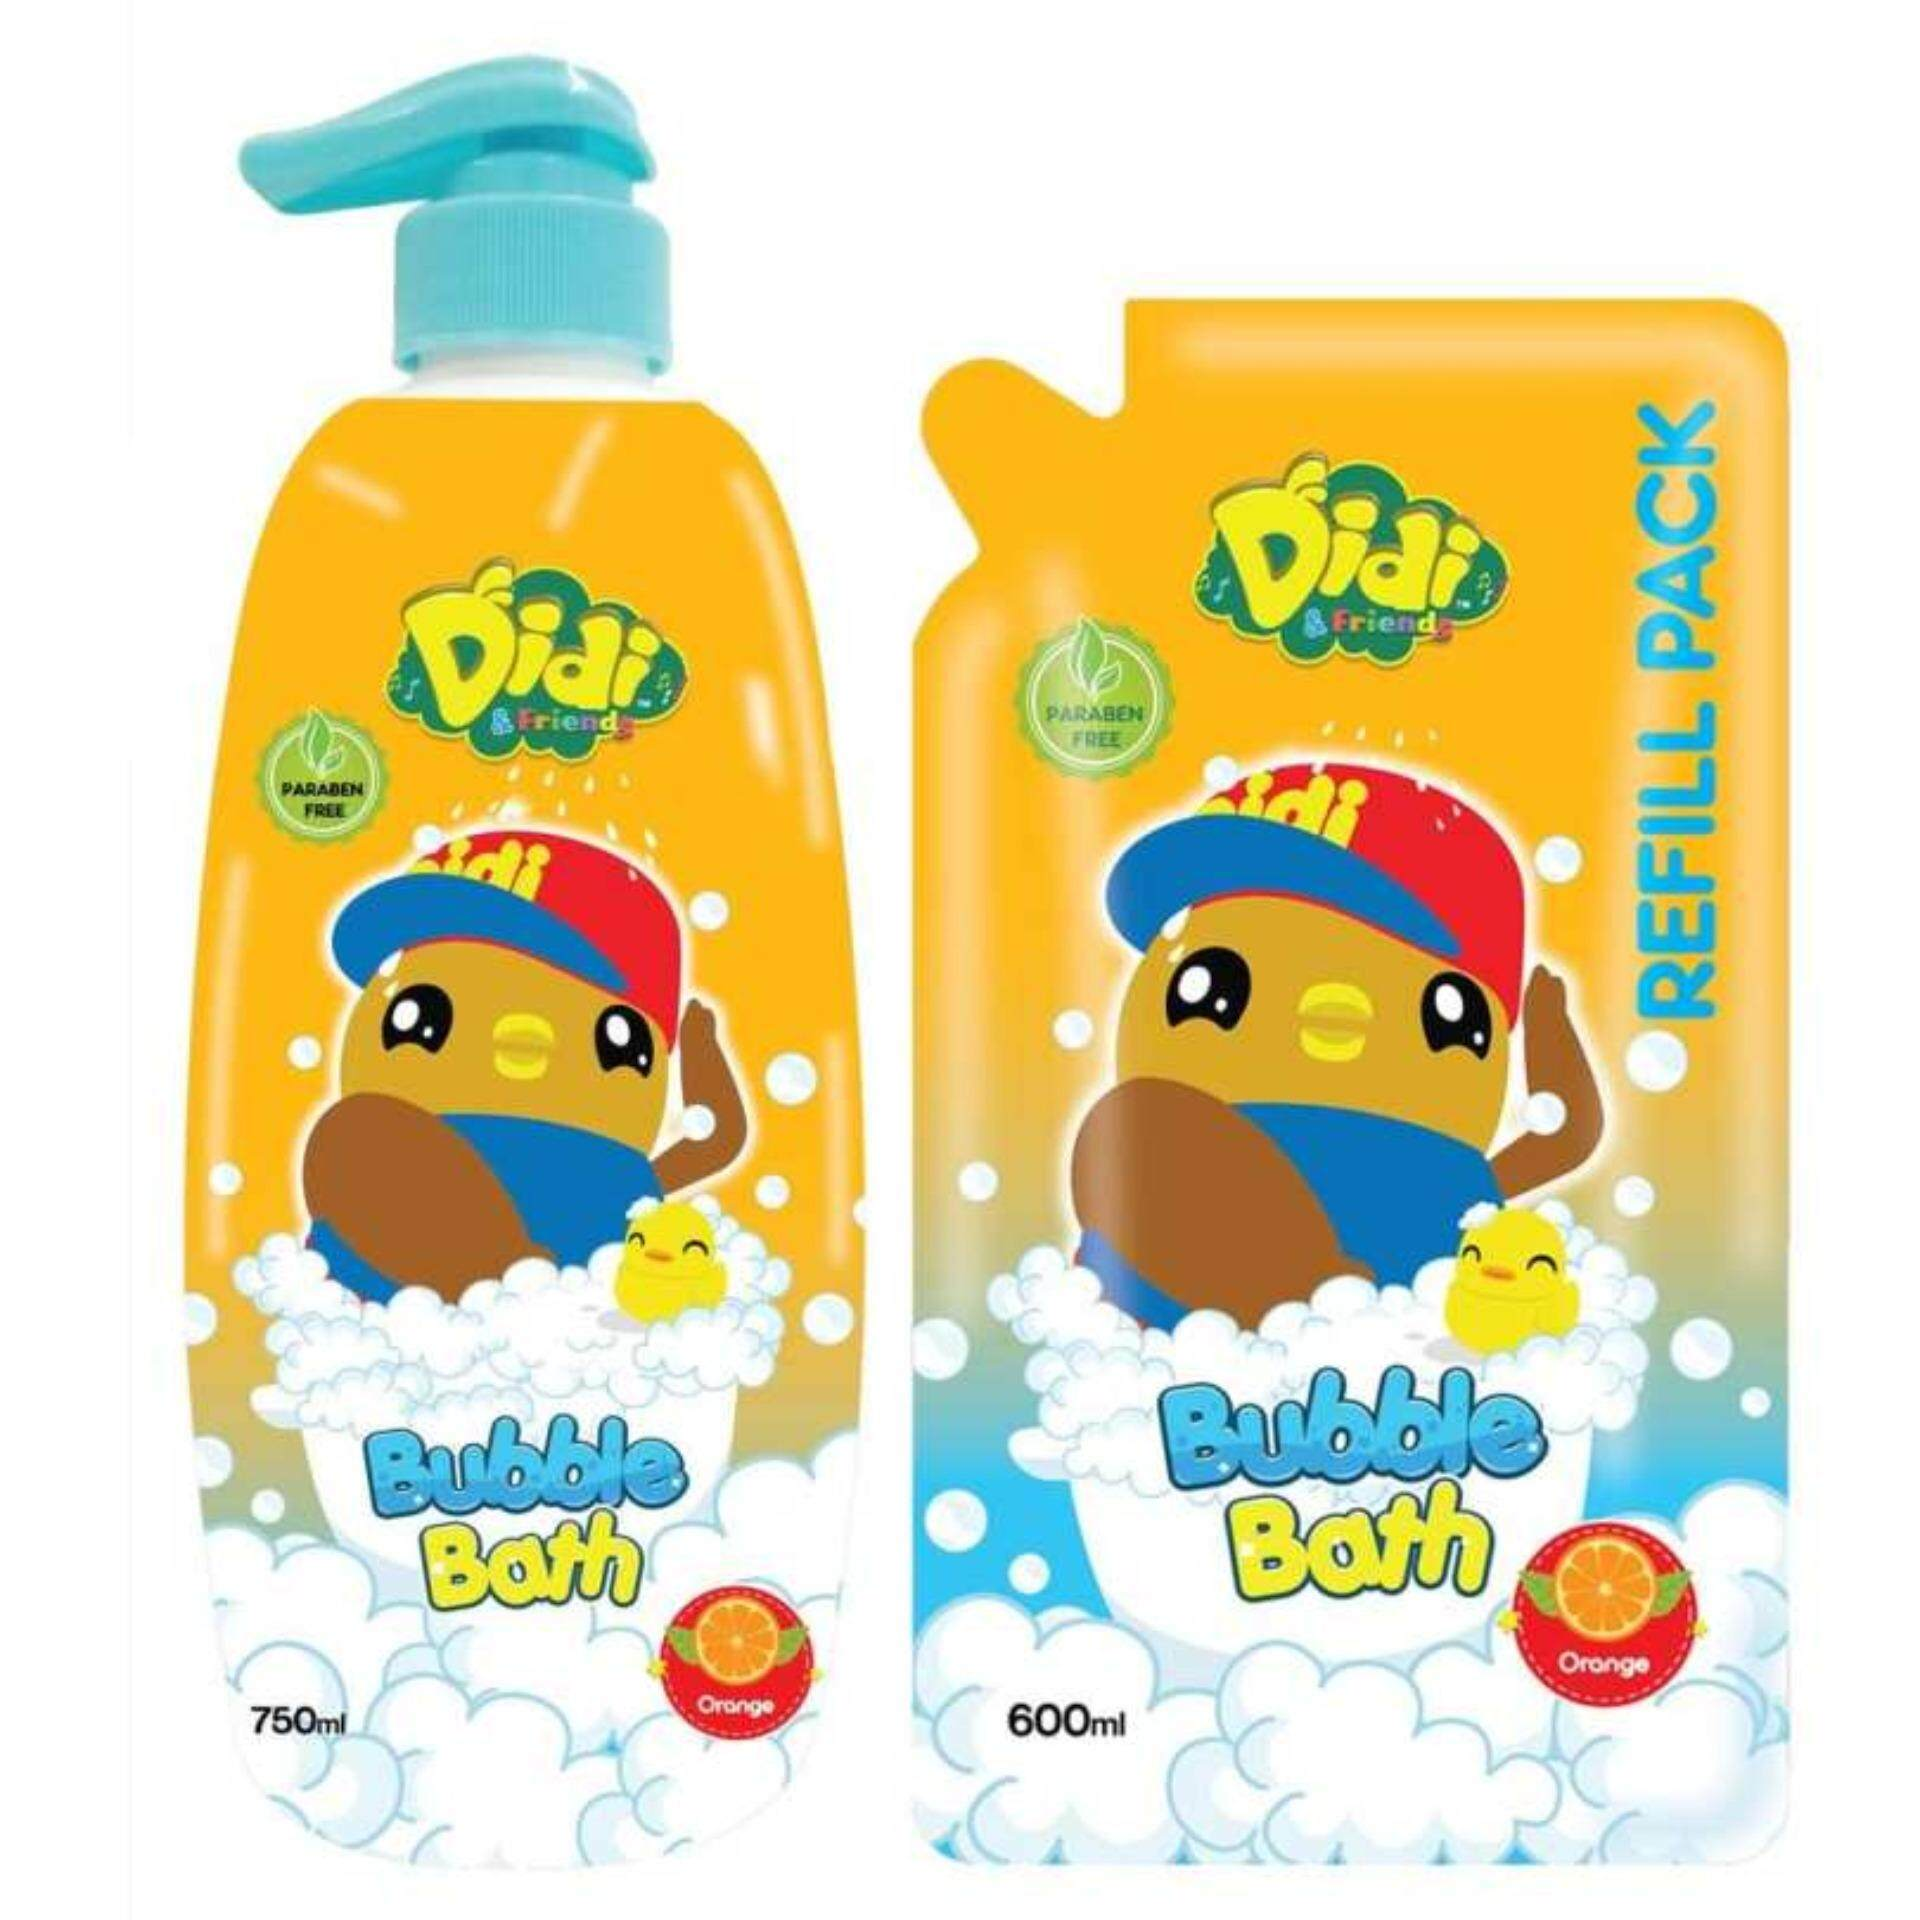 Didi & Friends Head To Toe Wash 750ML With Refill Pack 600ML Set - Orange Flavour